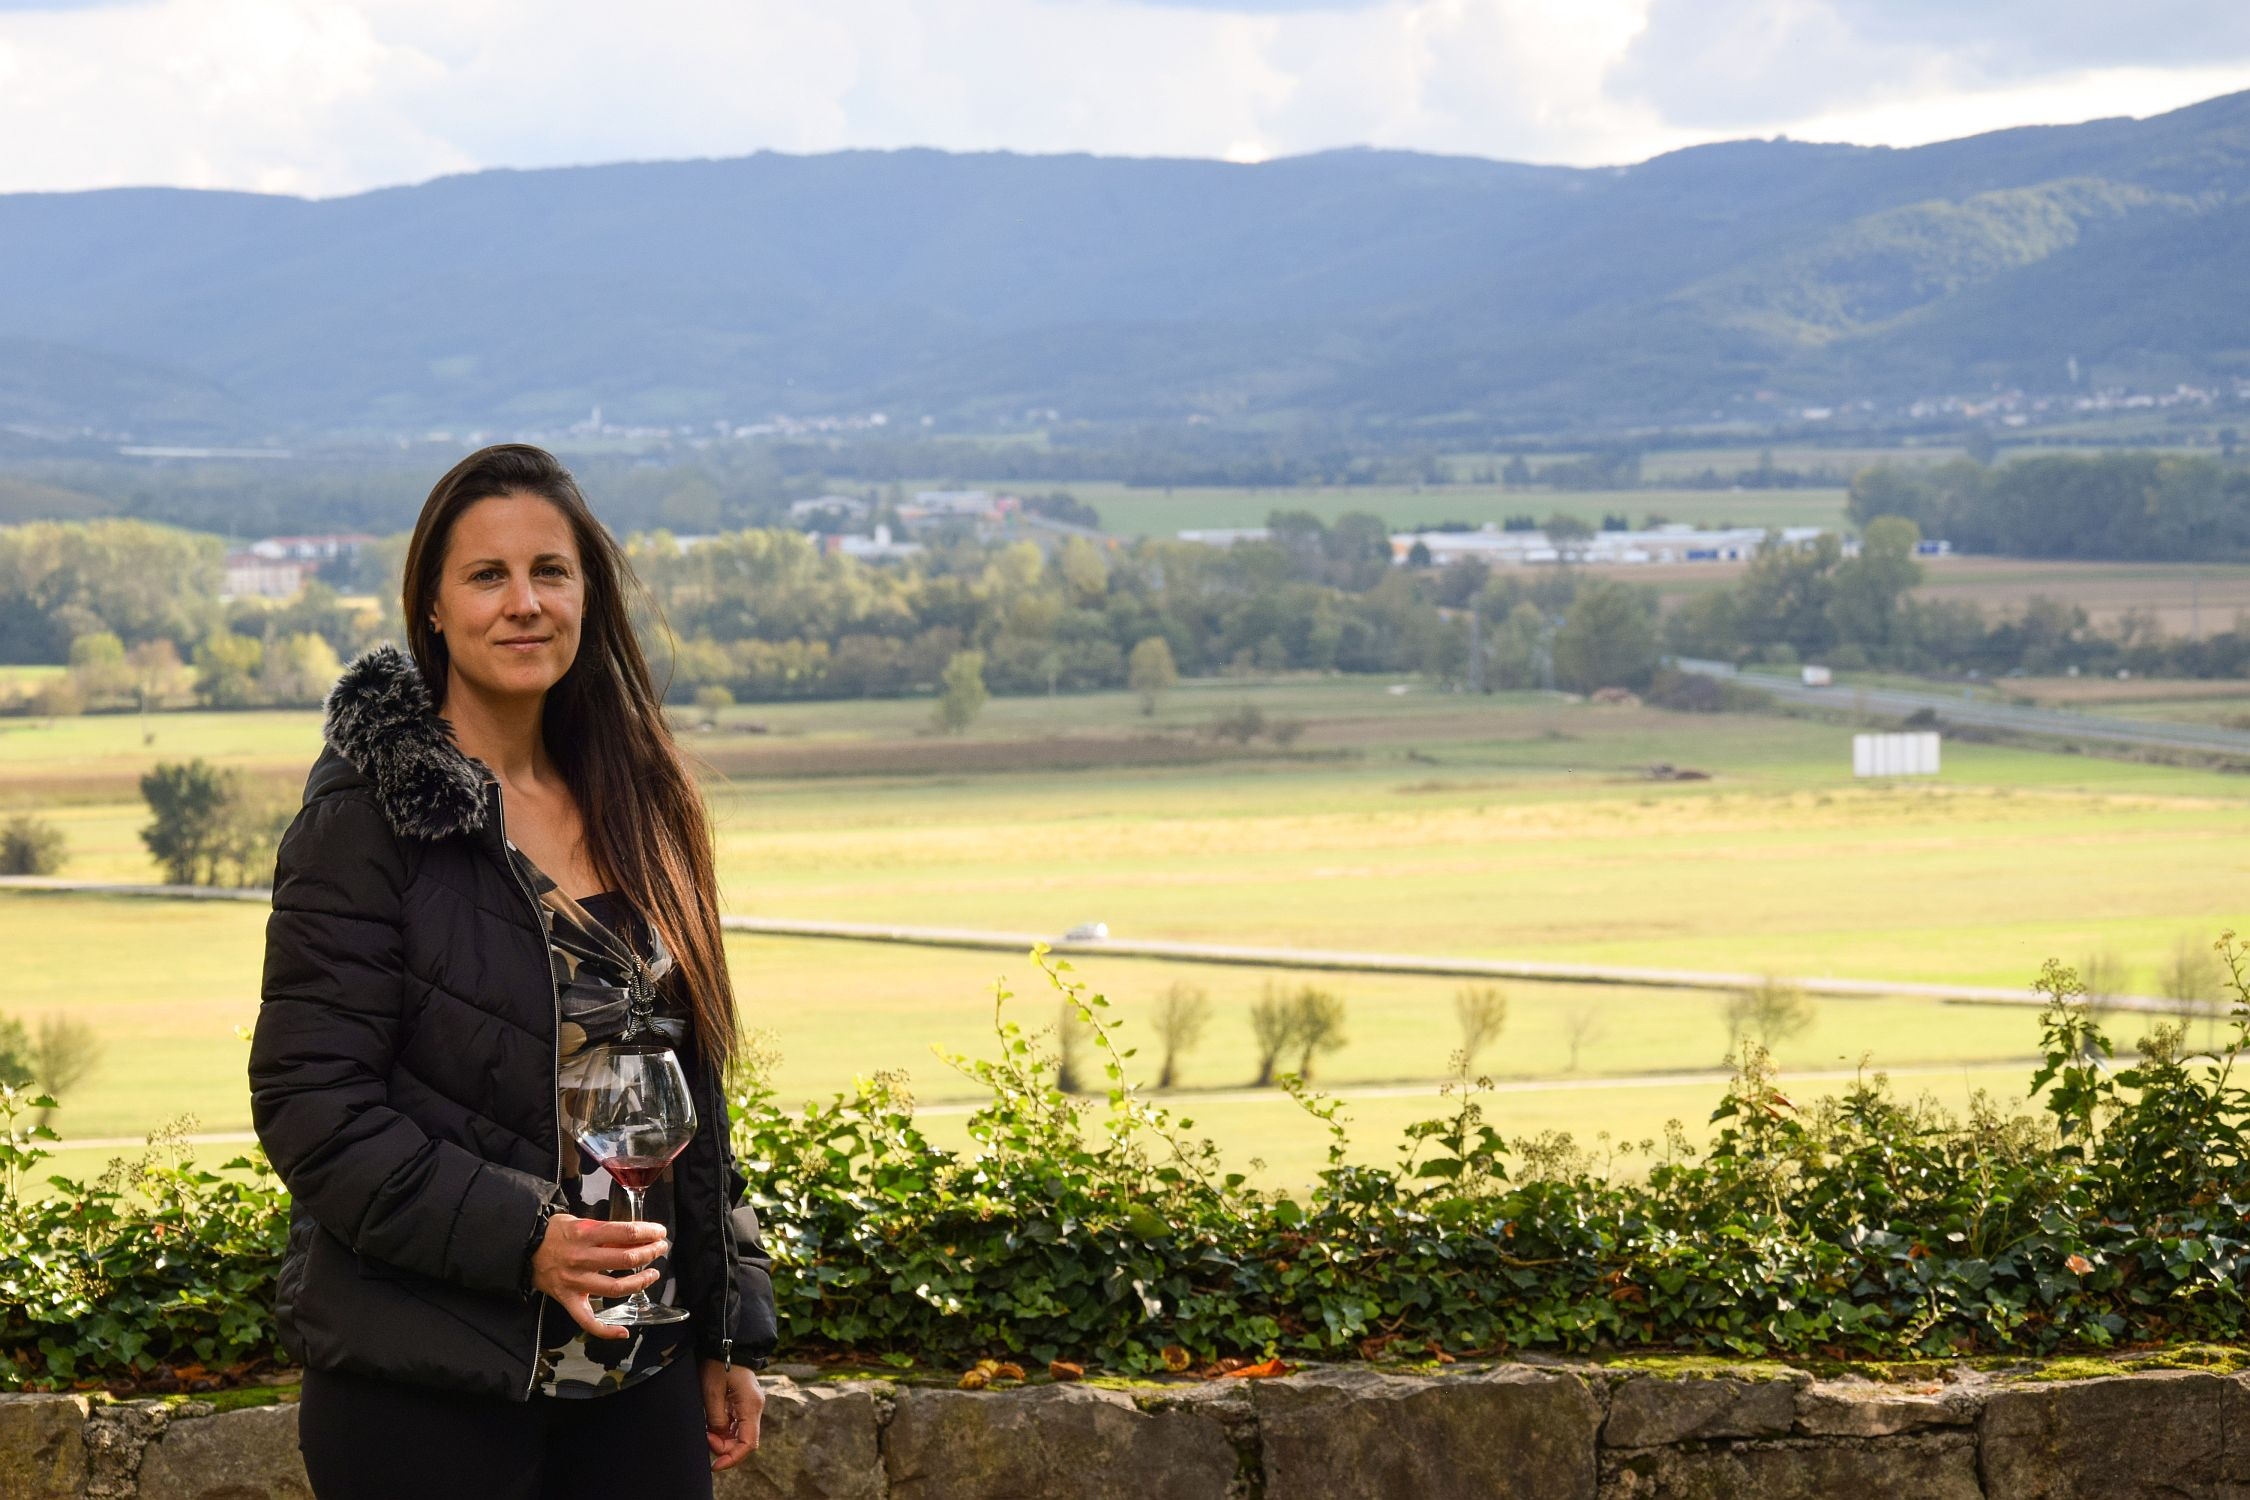 Denise Rejec of Wine Dine Slovenia at Zemono with Vipava Valley in the background during Modri Les Noirs